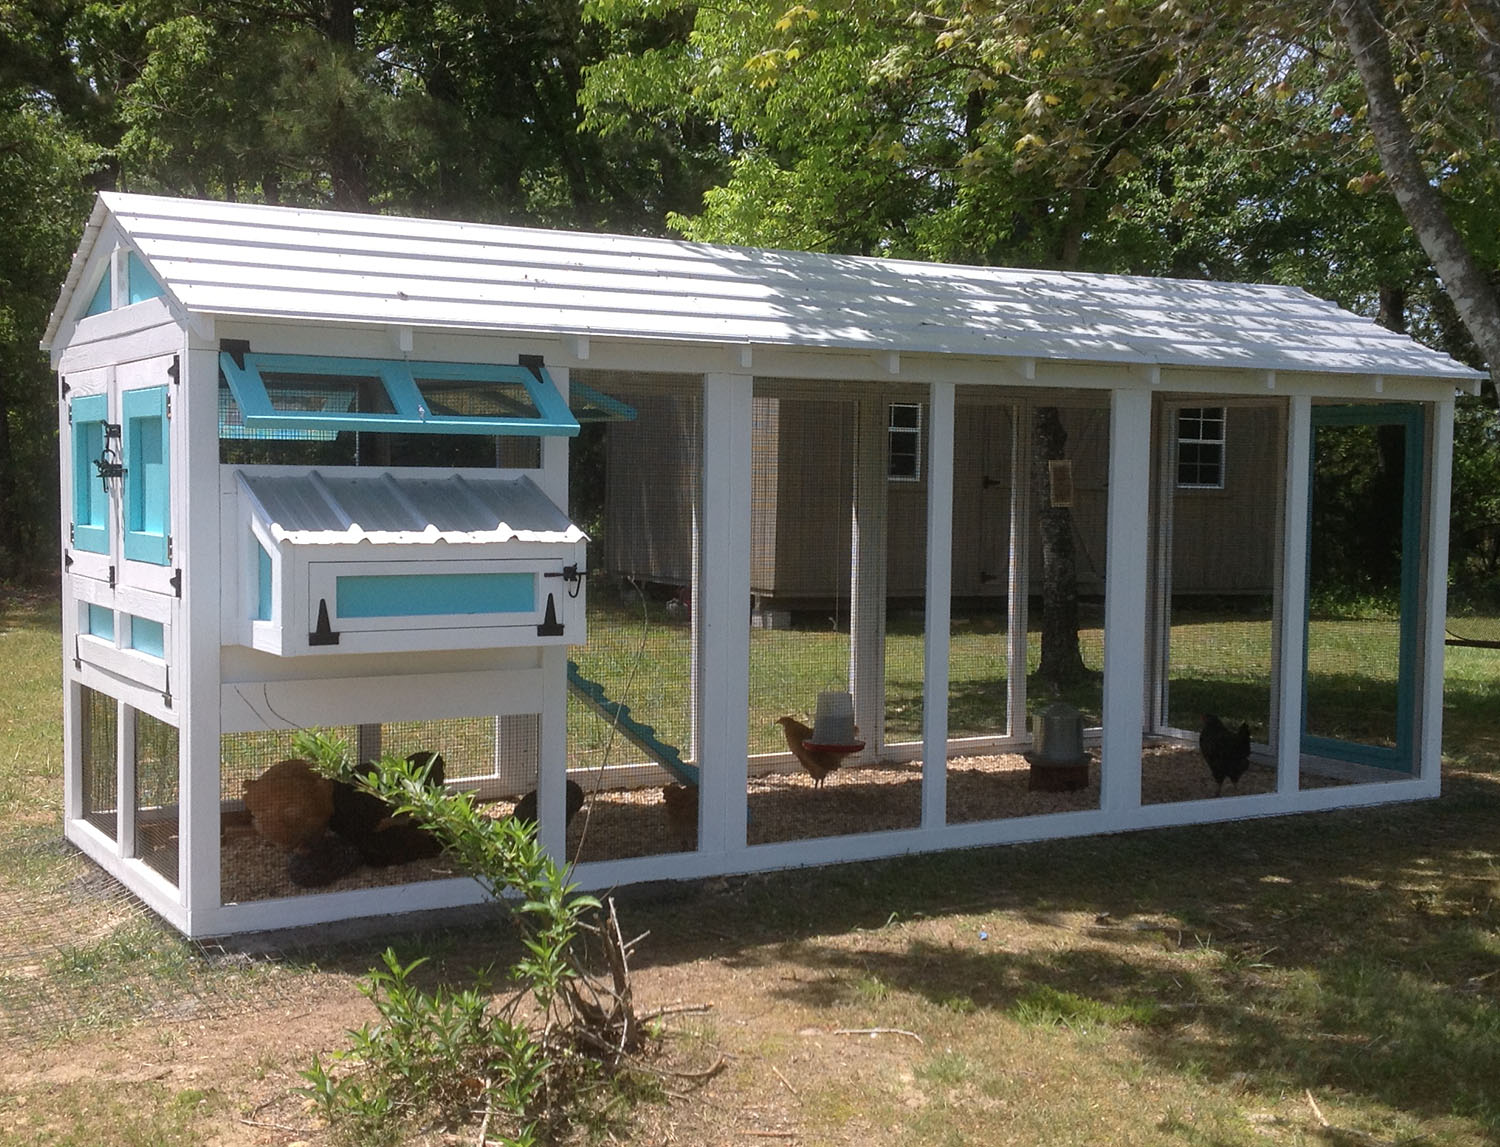 6′ x 18′ American Coop with 4′ x 6′ henhouse in blue and white